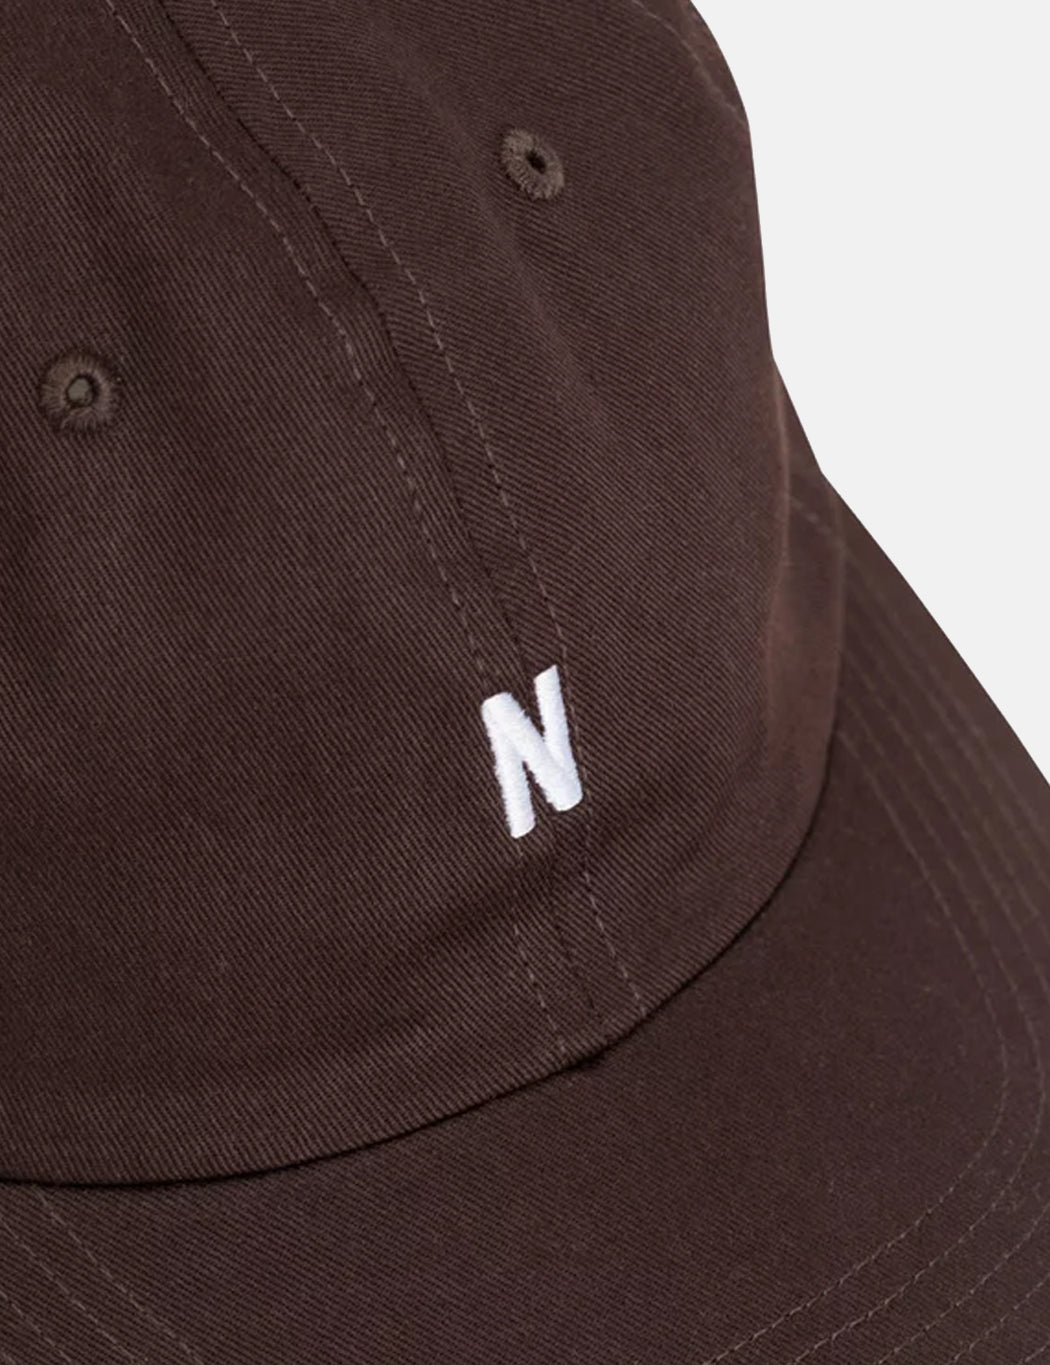 ba49372415f ... Norse Projects Twill Sports Cap - Eggplant Brown ...